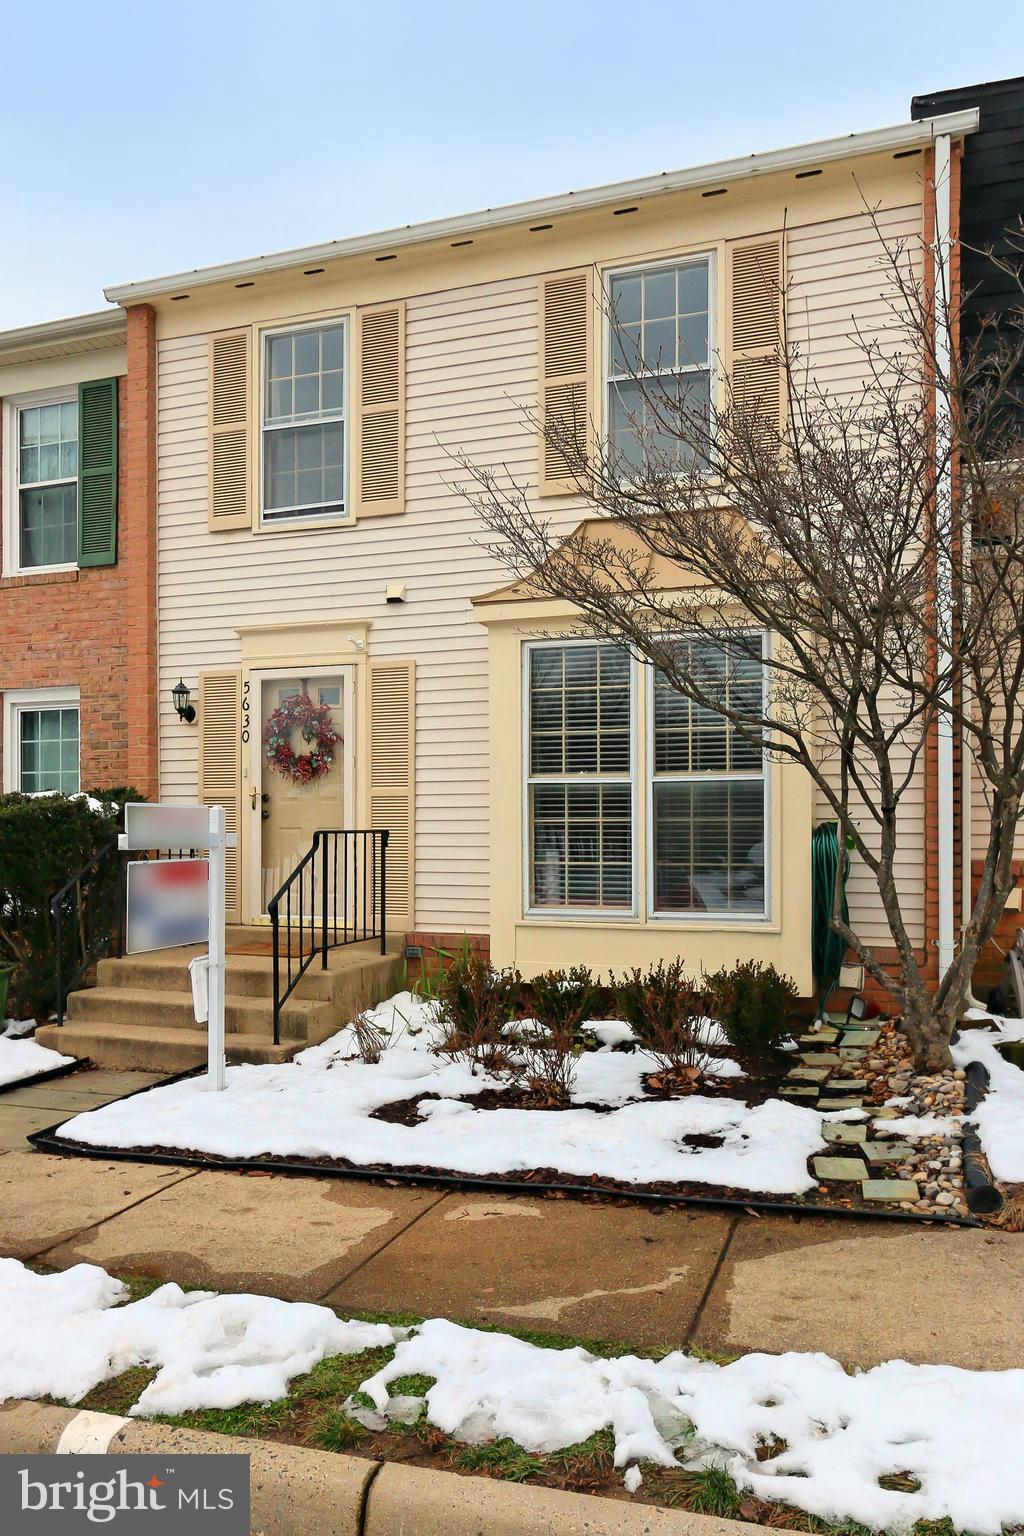 Rarely available floor plan with walk out basement! This beautiful home features three bedrooms and two full baths, powder room in main level, spacious lower level rec. room with extra storage, updated kitchen with granite and stainless appliances, neutral pain throughout, upgraded baths, new roof, new HVAC system and so much more!!!Large deck off living room and spacious fully fenced back yard back up to trees providing plenty of privacy!!!Please call listing agent Irina Babb at 571-217-2571 with questions.